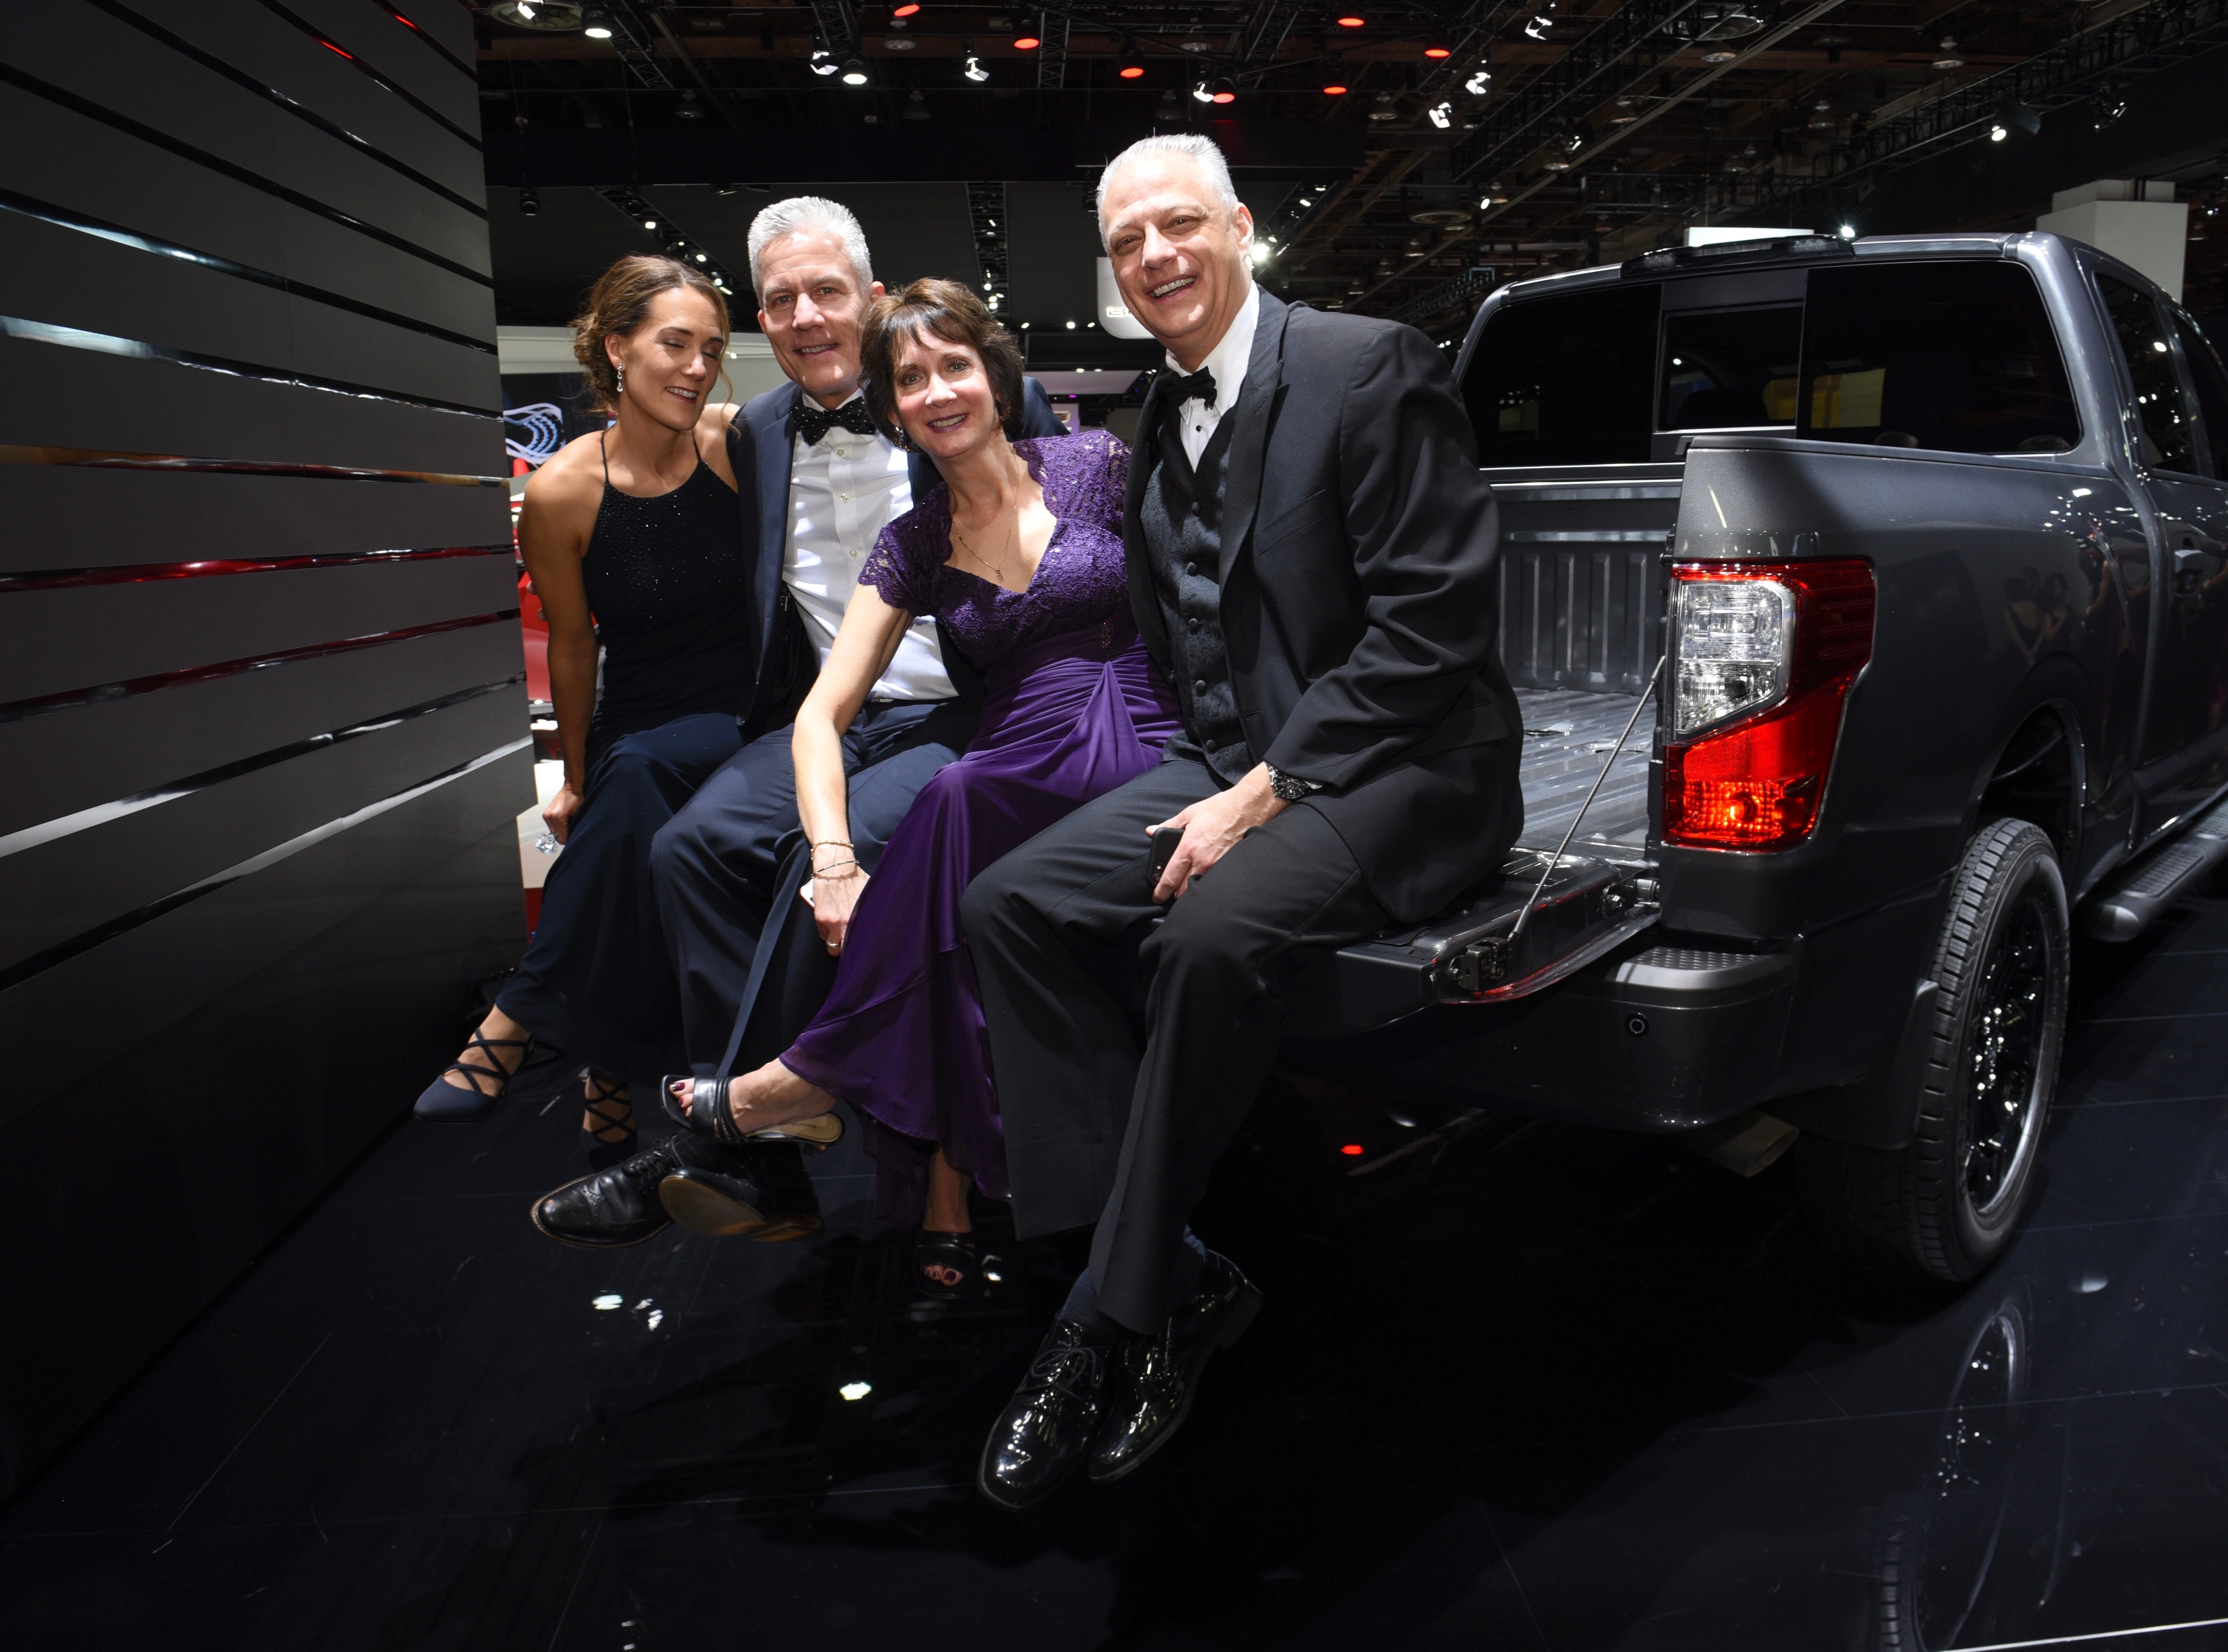 From left, Kelly and Mathew Gajda share a moment on the tailgate of a Nissan Titan XD with Lesa Melhorn and her husband Marty.